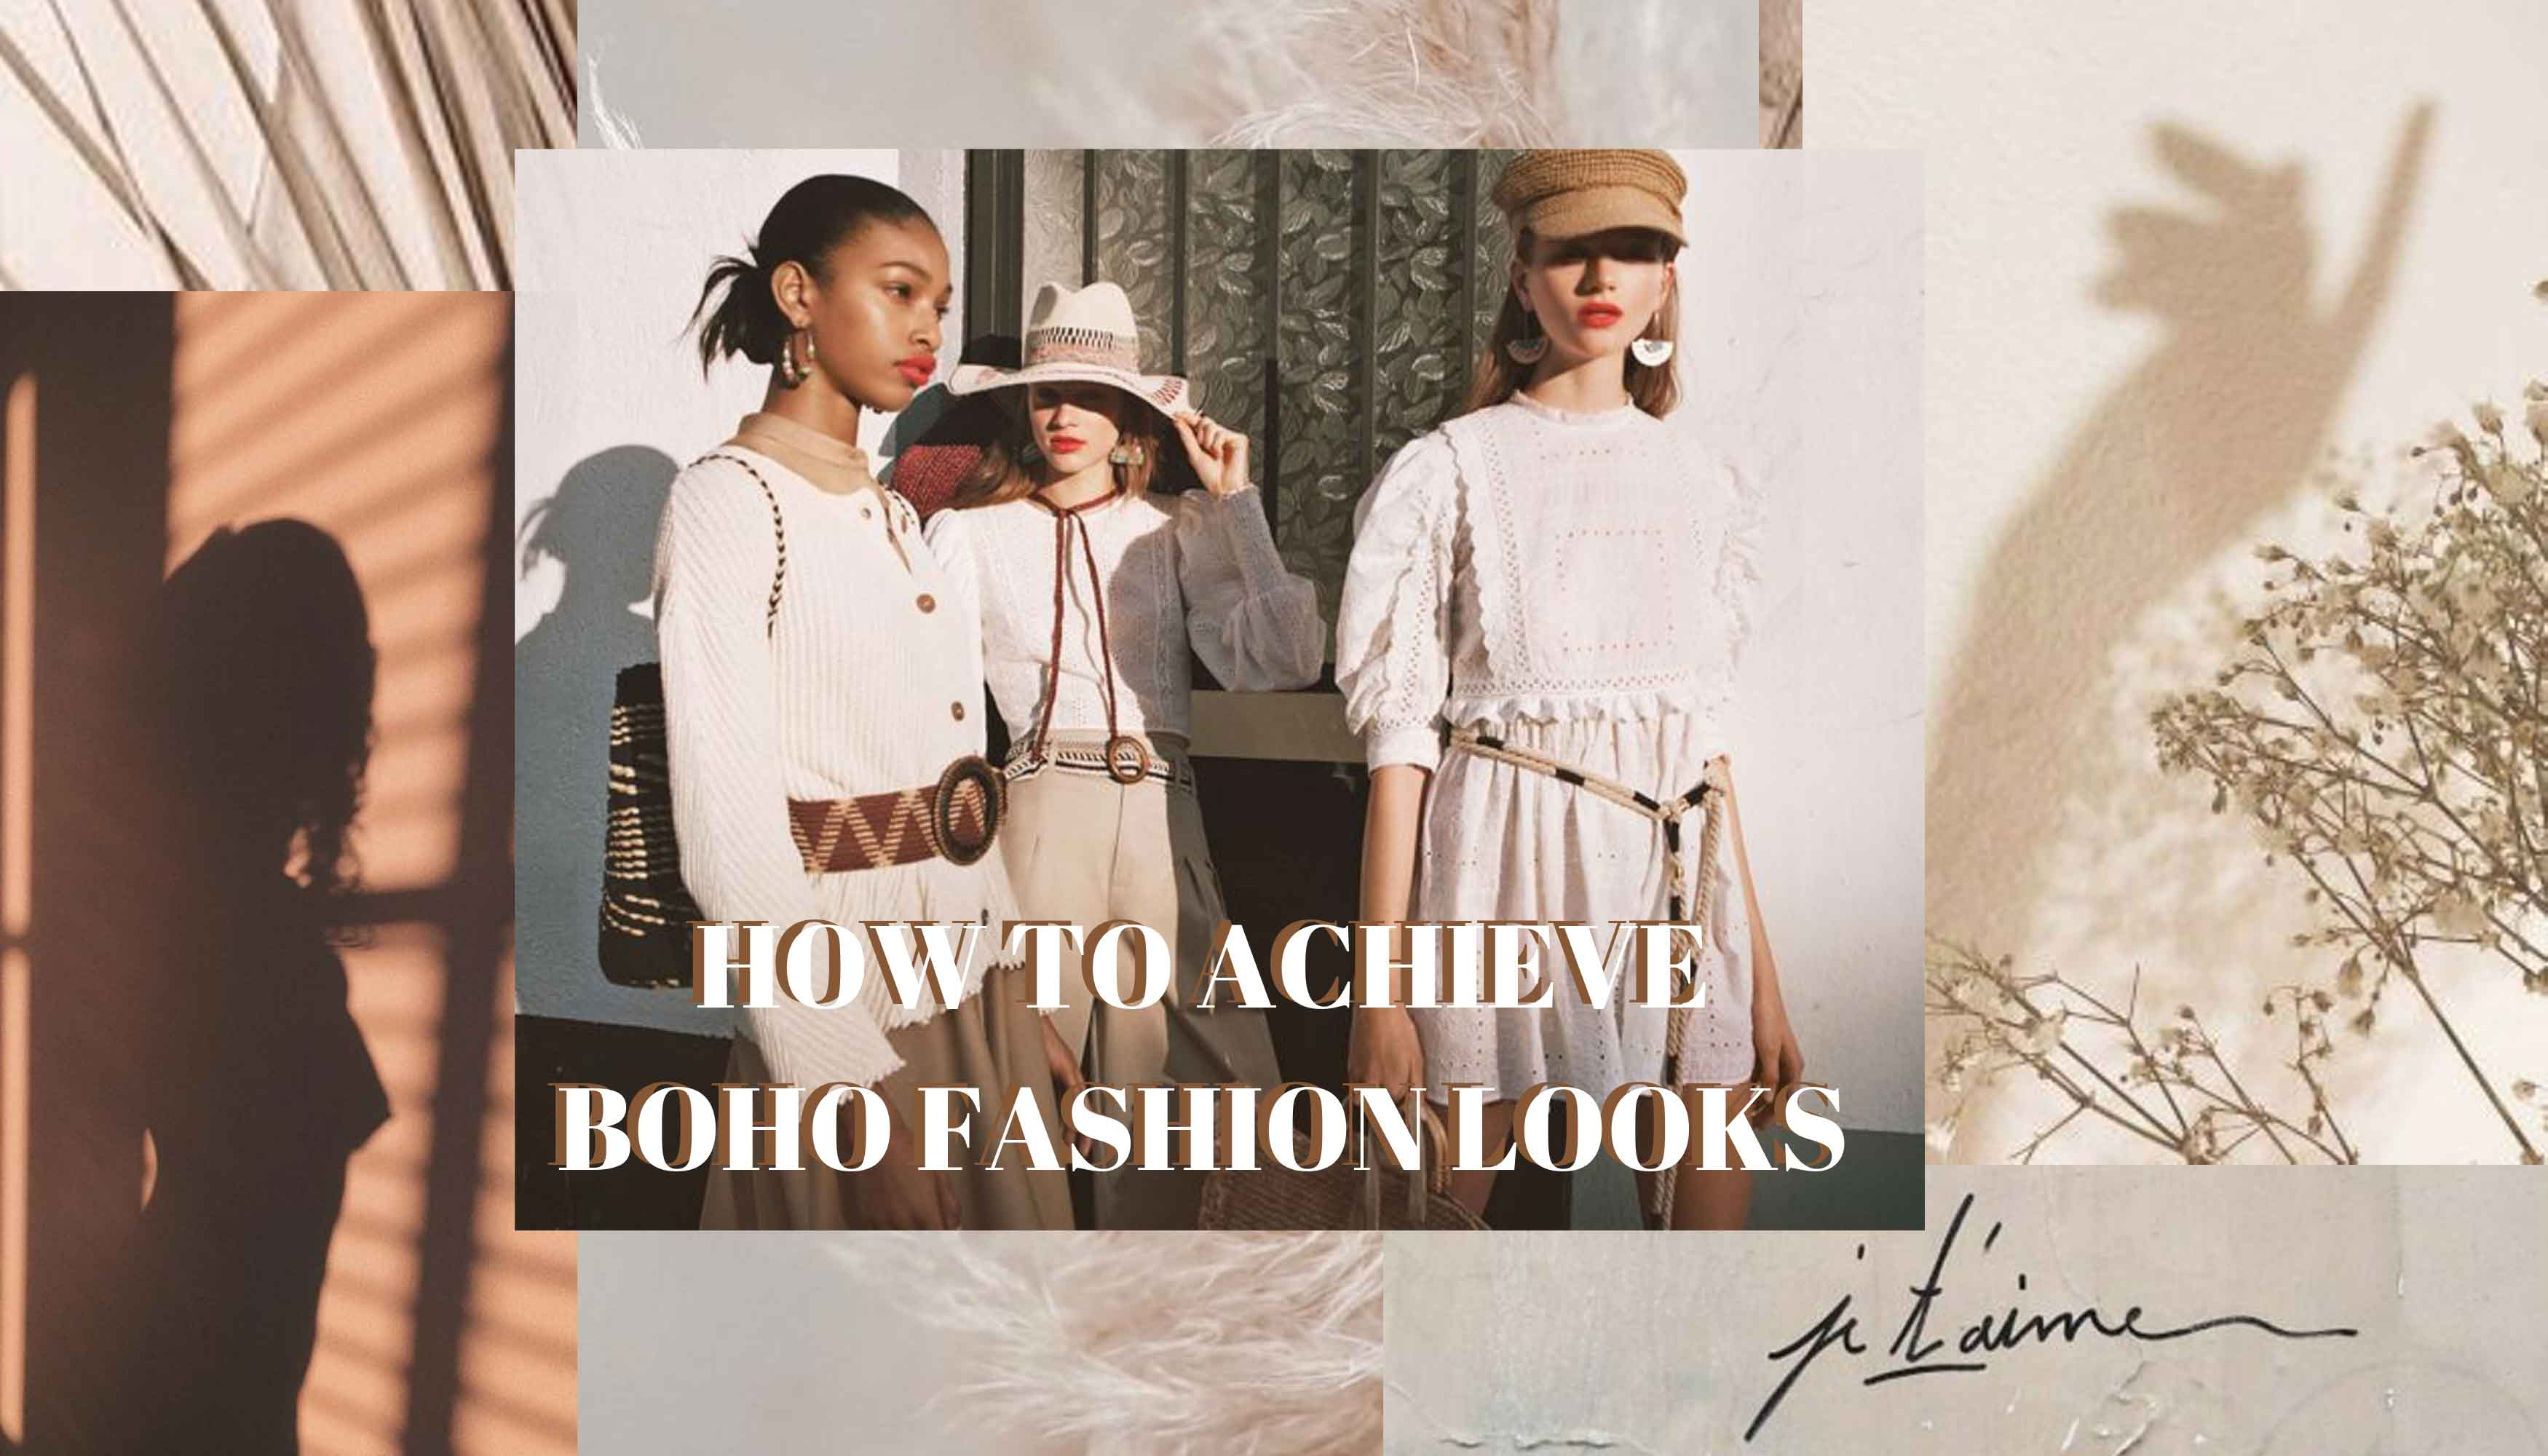 Tips to Achieve Boho Fashion Looks